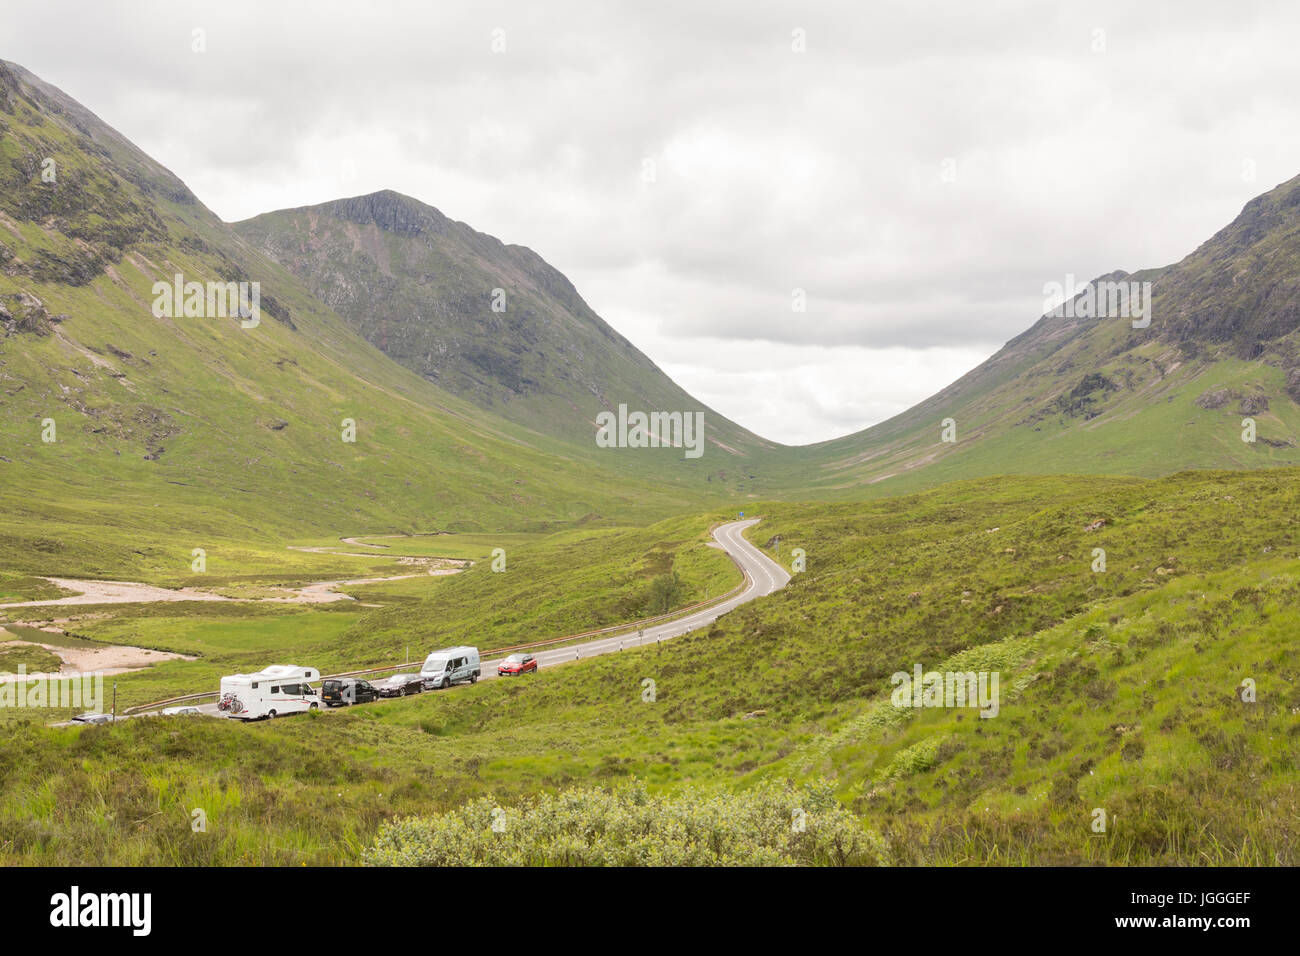 A82 trunk road, Glencoe, Scotland, UK - view from start of the Devil's Staircase walk with cars parked in layby - Stock Image